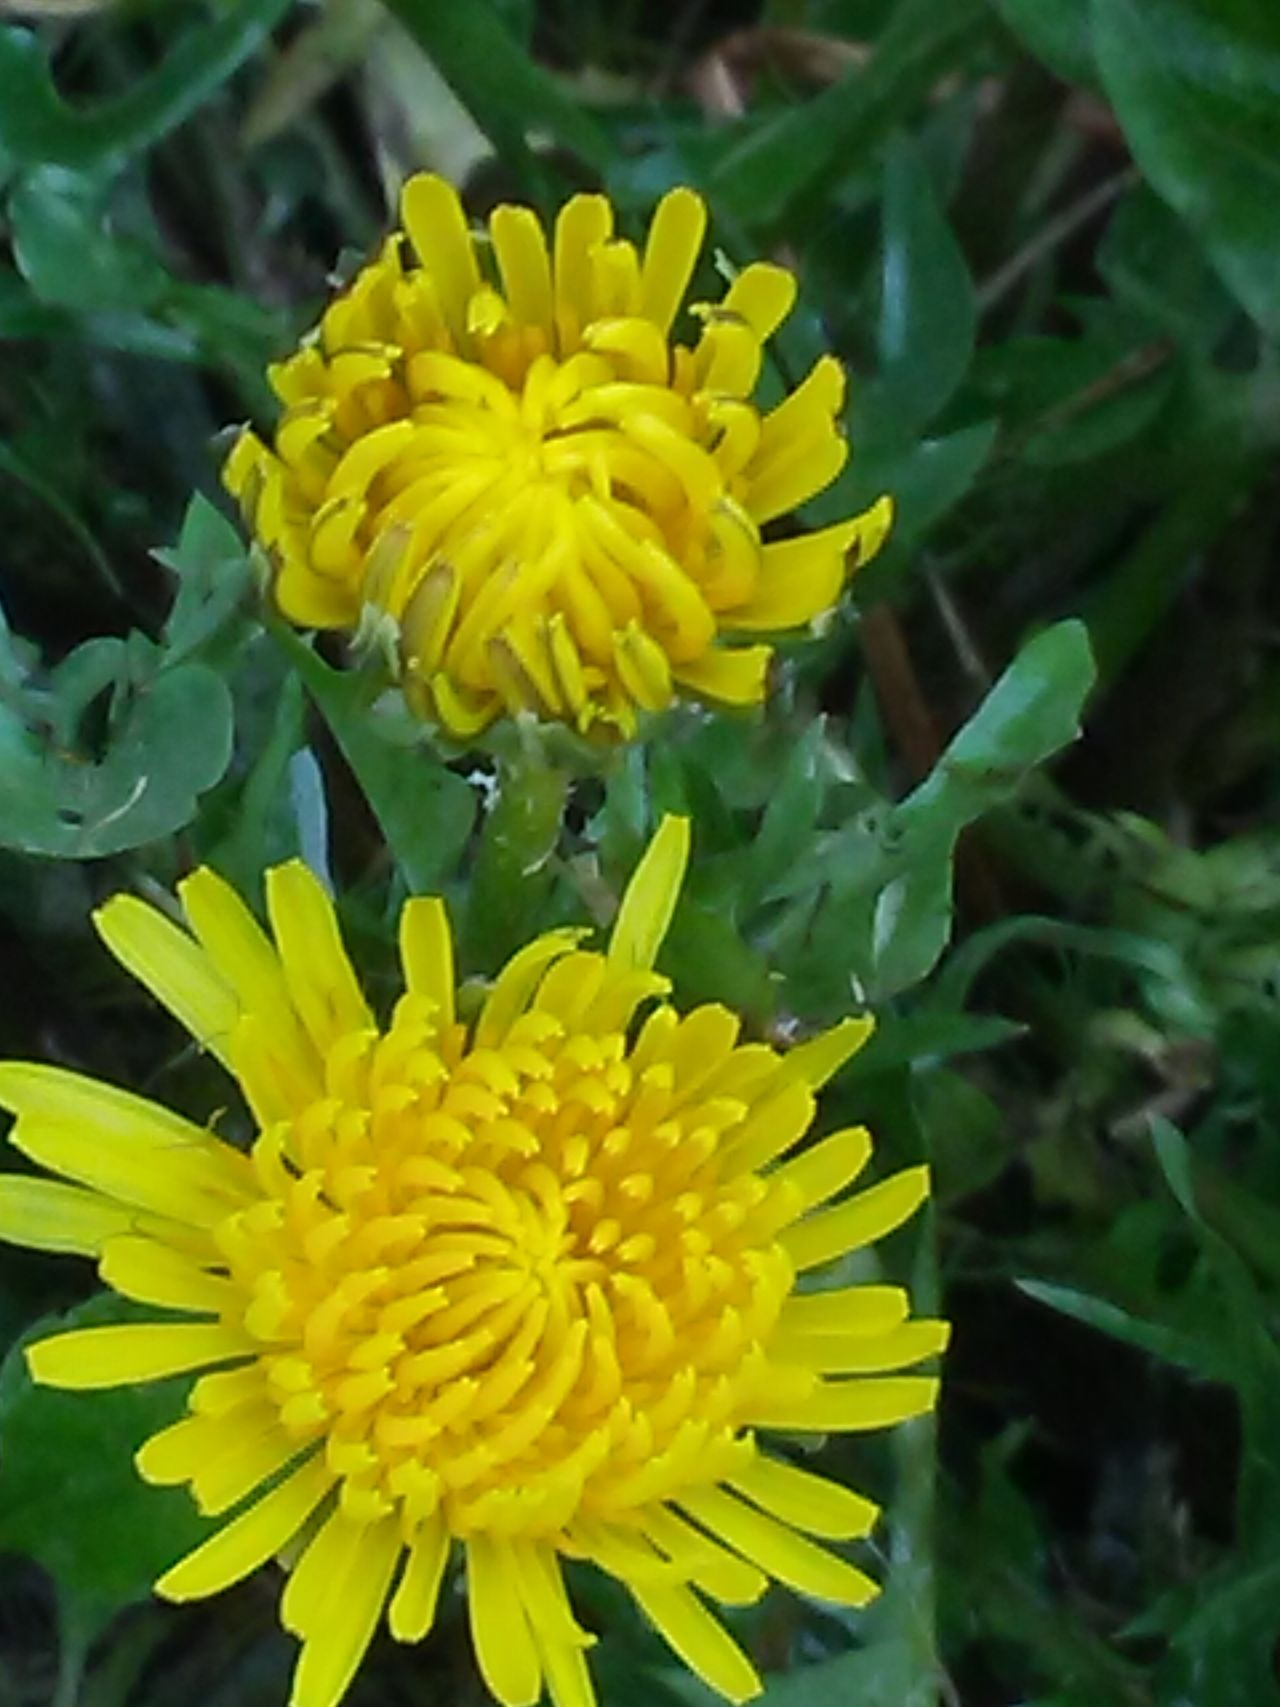 Yellow Flower Flower Head Petal Beauty In Nature Nature Freshness Fragility Growth Close-up Plant Focus On Foreground Leaf Blossom Blooming Pollen Outdoors Day No People Yellow Color